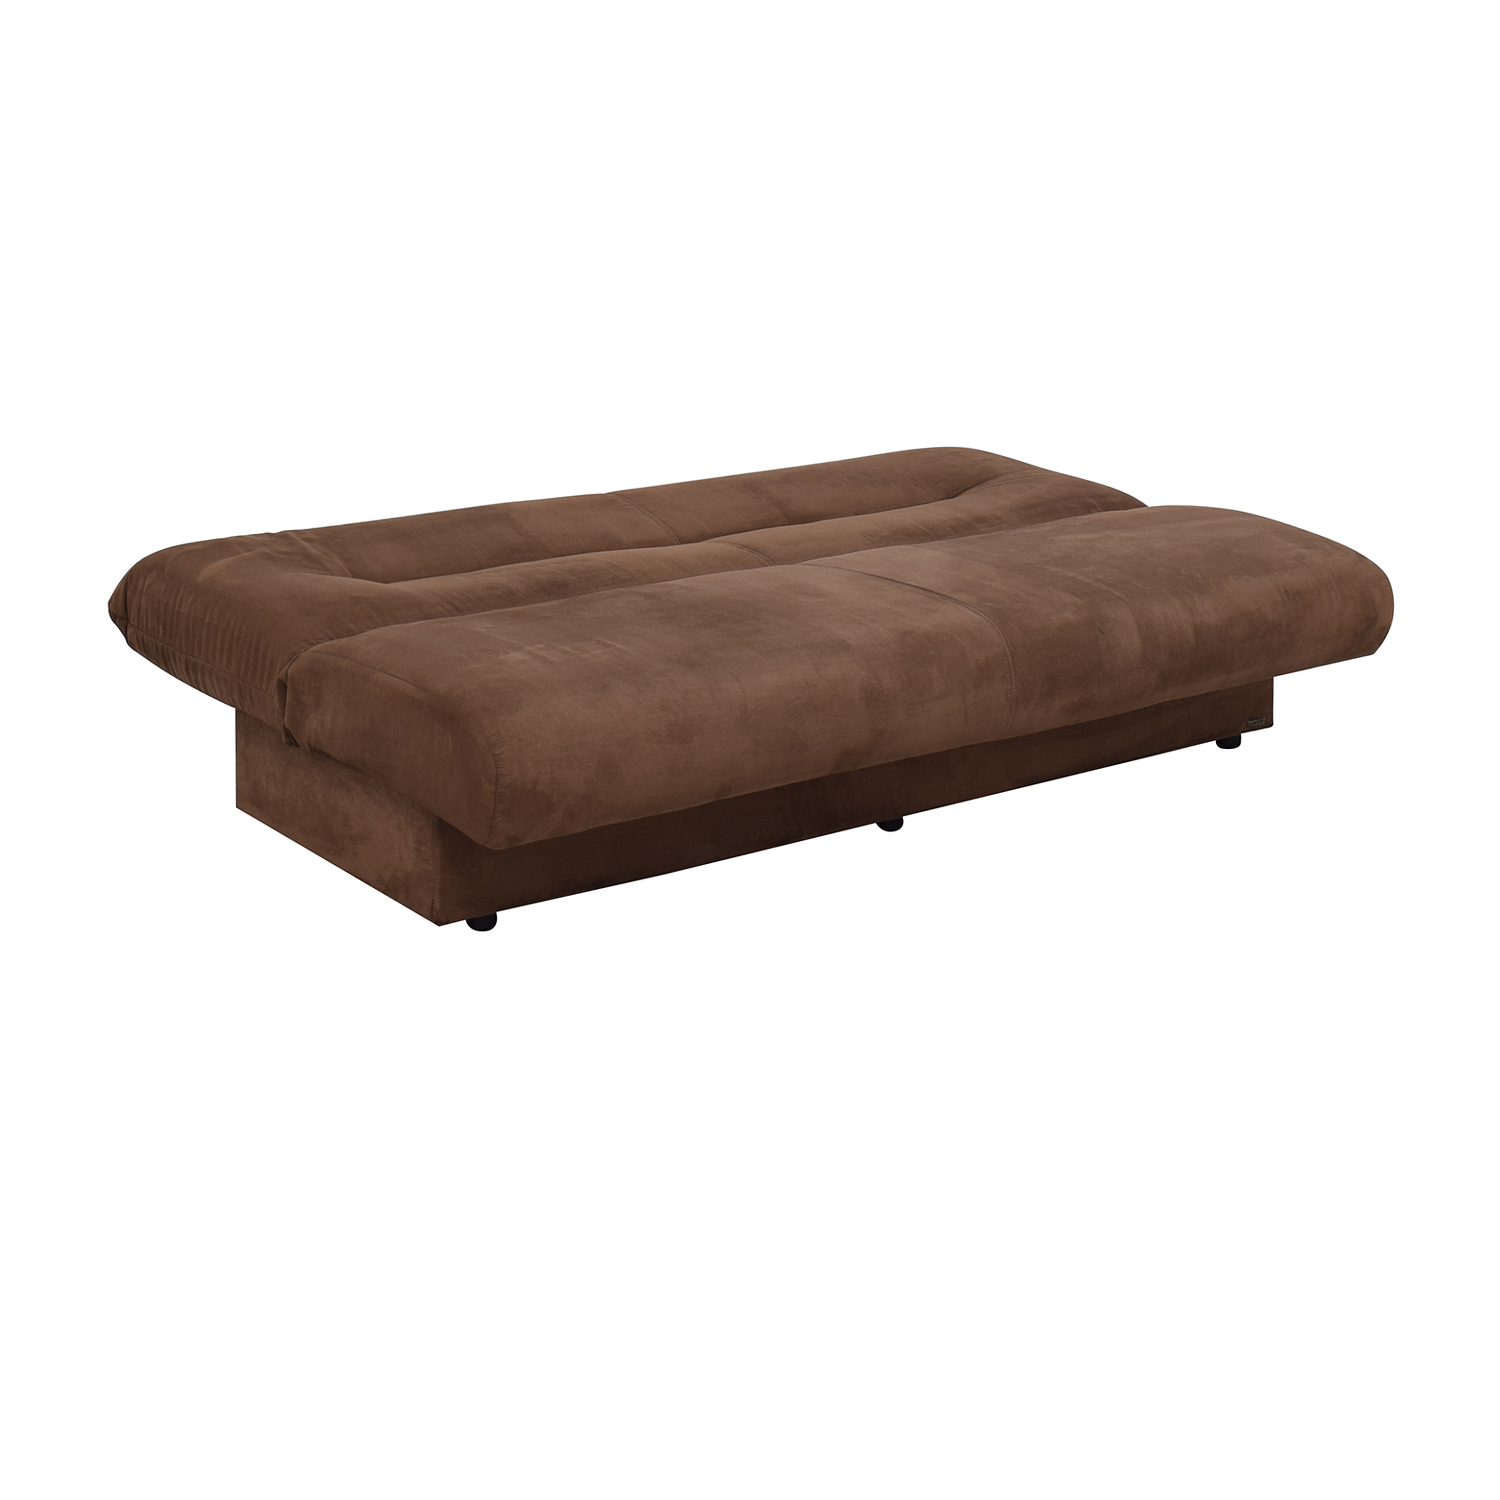 Istikbal Istikbal Furniture Regata Diego Convertible Full Sofa Bed Sofa Beds